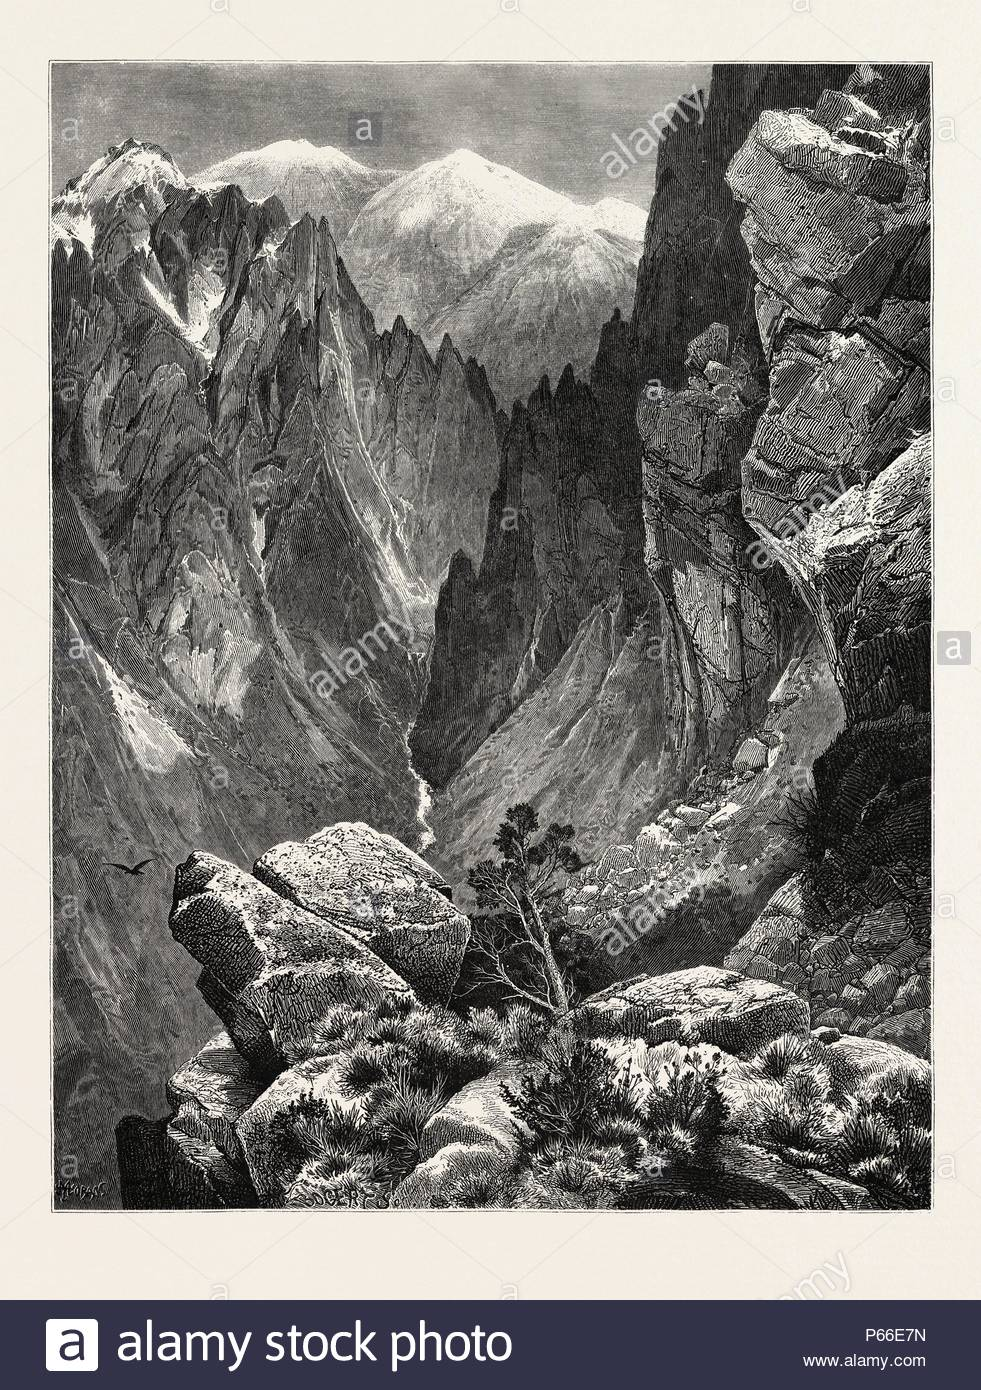 SPRINGVILLE CANYON. Thomas Moran (February 12, 1837 – August 25, 1926) from Bolton, England was an American painter and printmaker of the Hudson River School in New York whose work often featured the Rocky Mountains. USA. - Stock Image